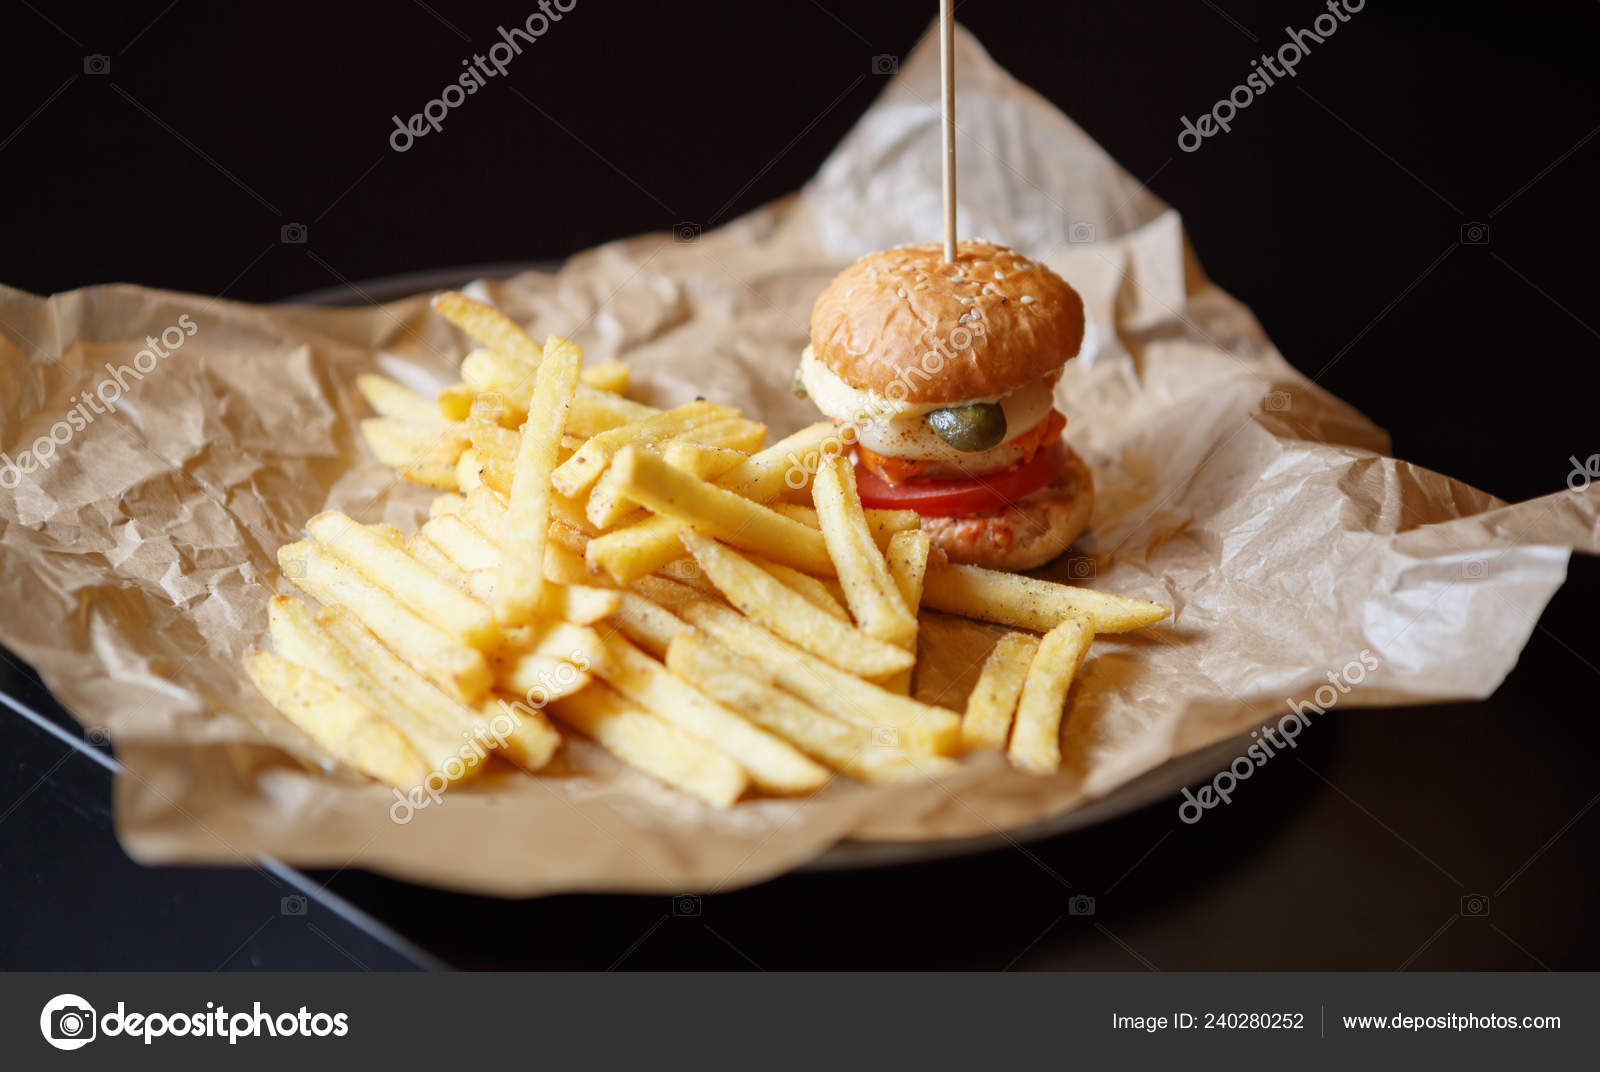 Tasty Little Baby Burger Fast Food Cafe Menu Delicious Small Stock Photo C Hurricanehank 240280252